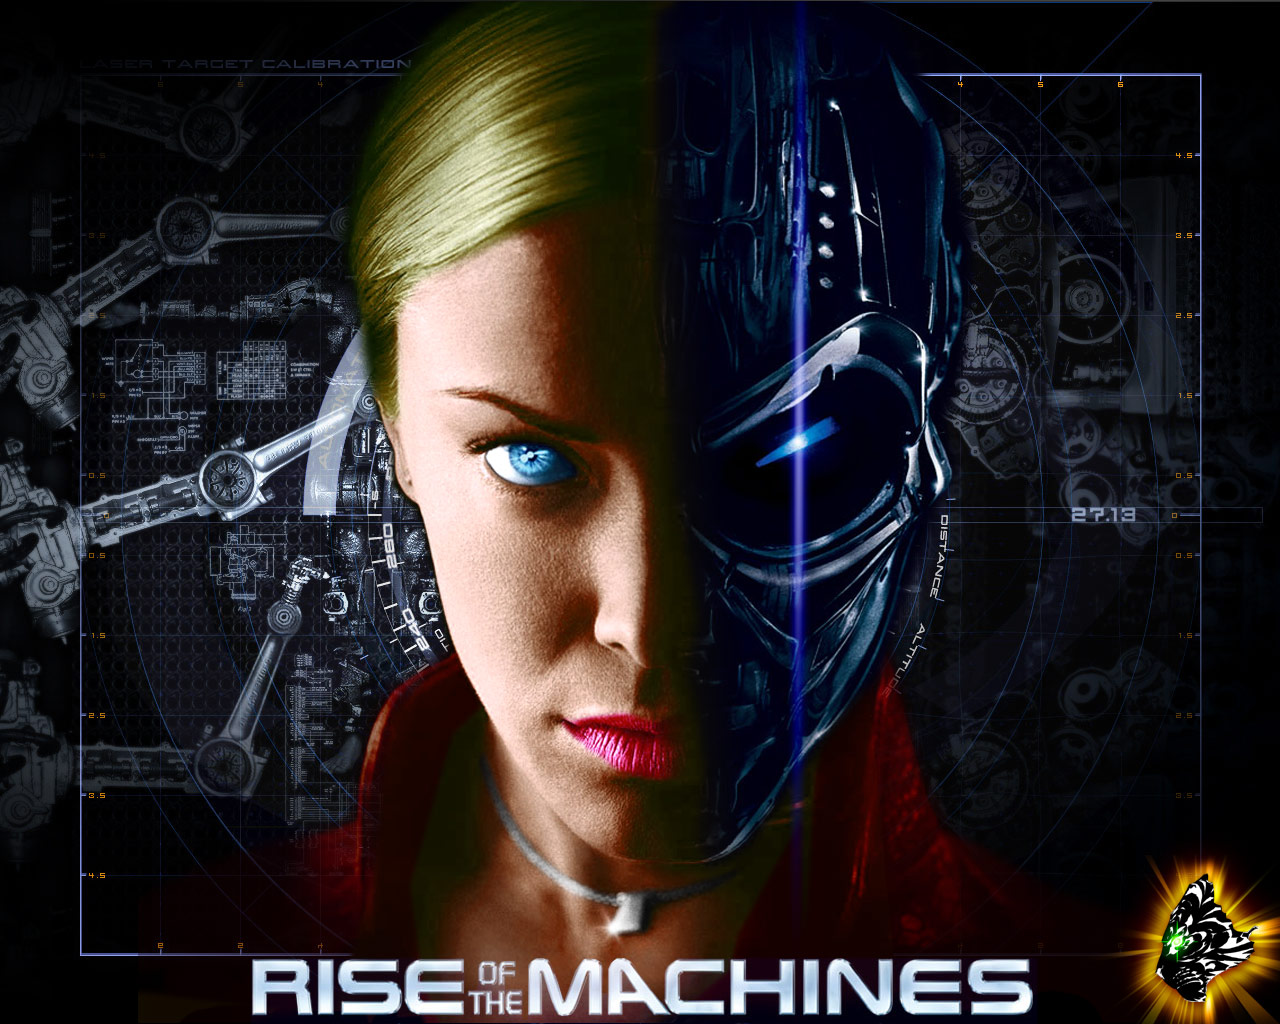 terminator rise of the machines wallpaper Download terminator 3: rise of the machines yify movies torrent: more than 10 years after 'terminator 2', john connor now exists only as a drifter - living 'off the grid', so no more terminators fr.